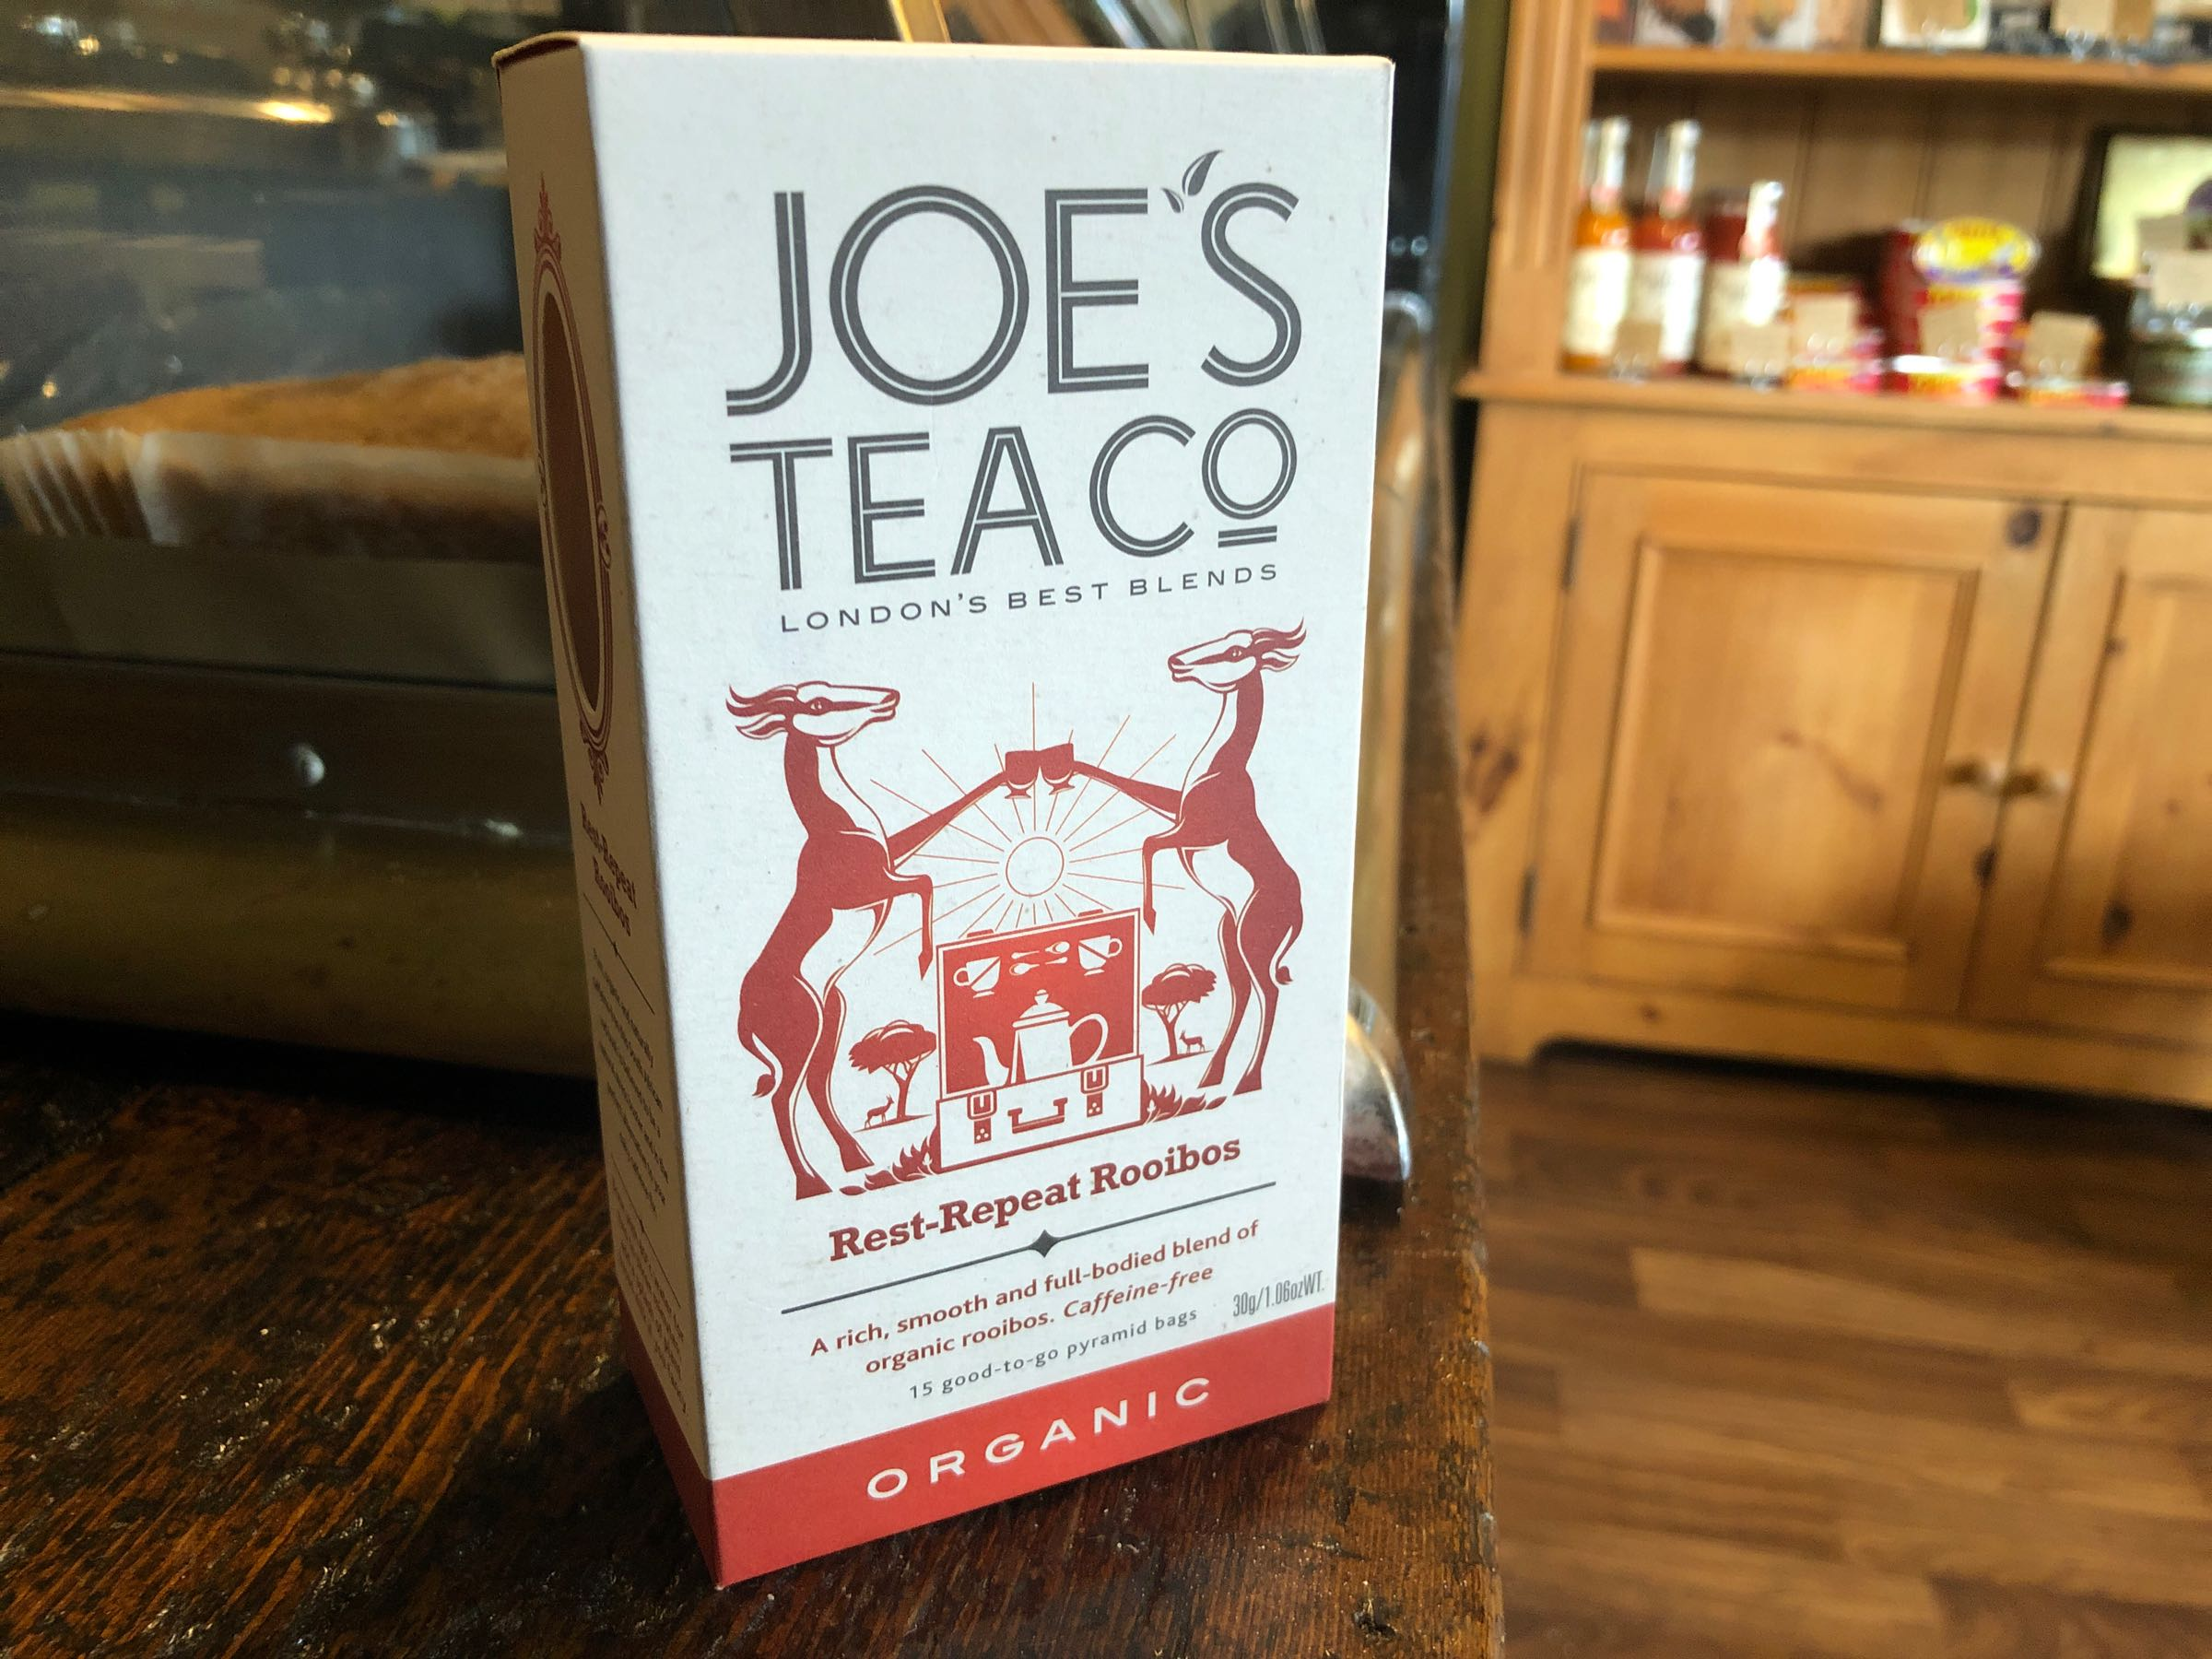 Joe's Tea Co. Rest-Repeat Rooibos – Organic